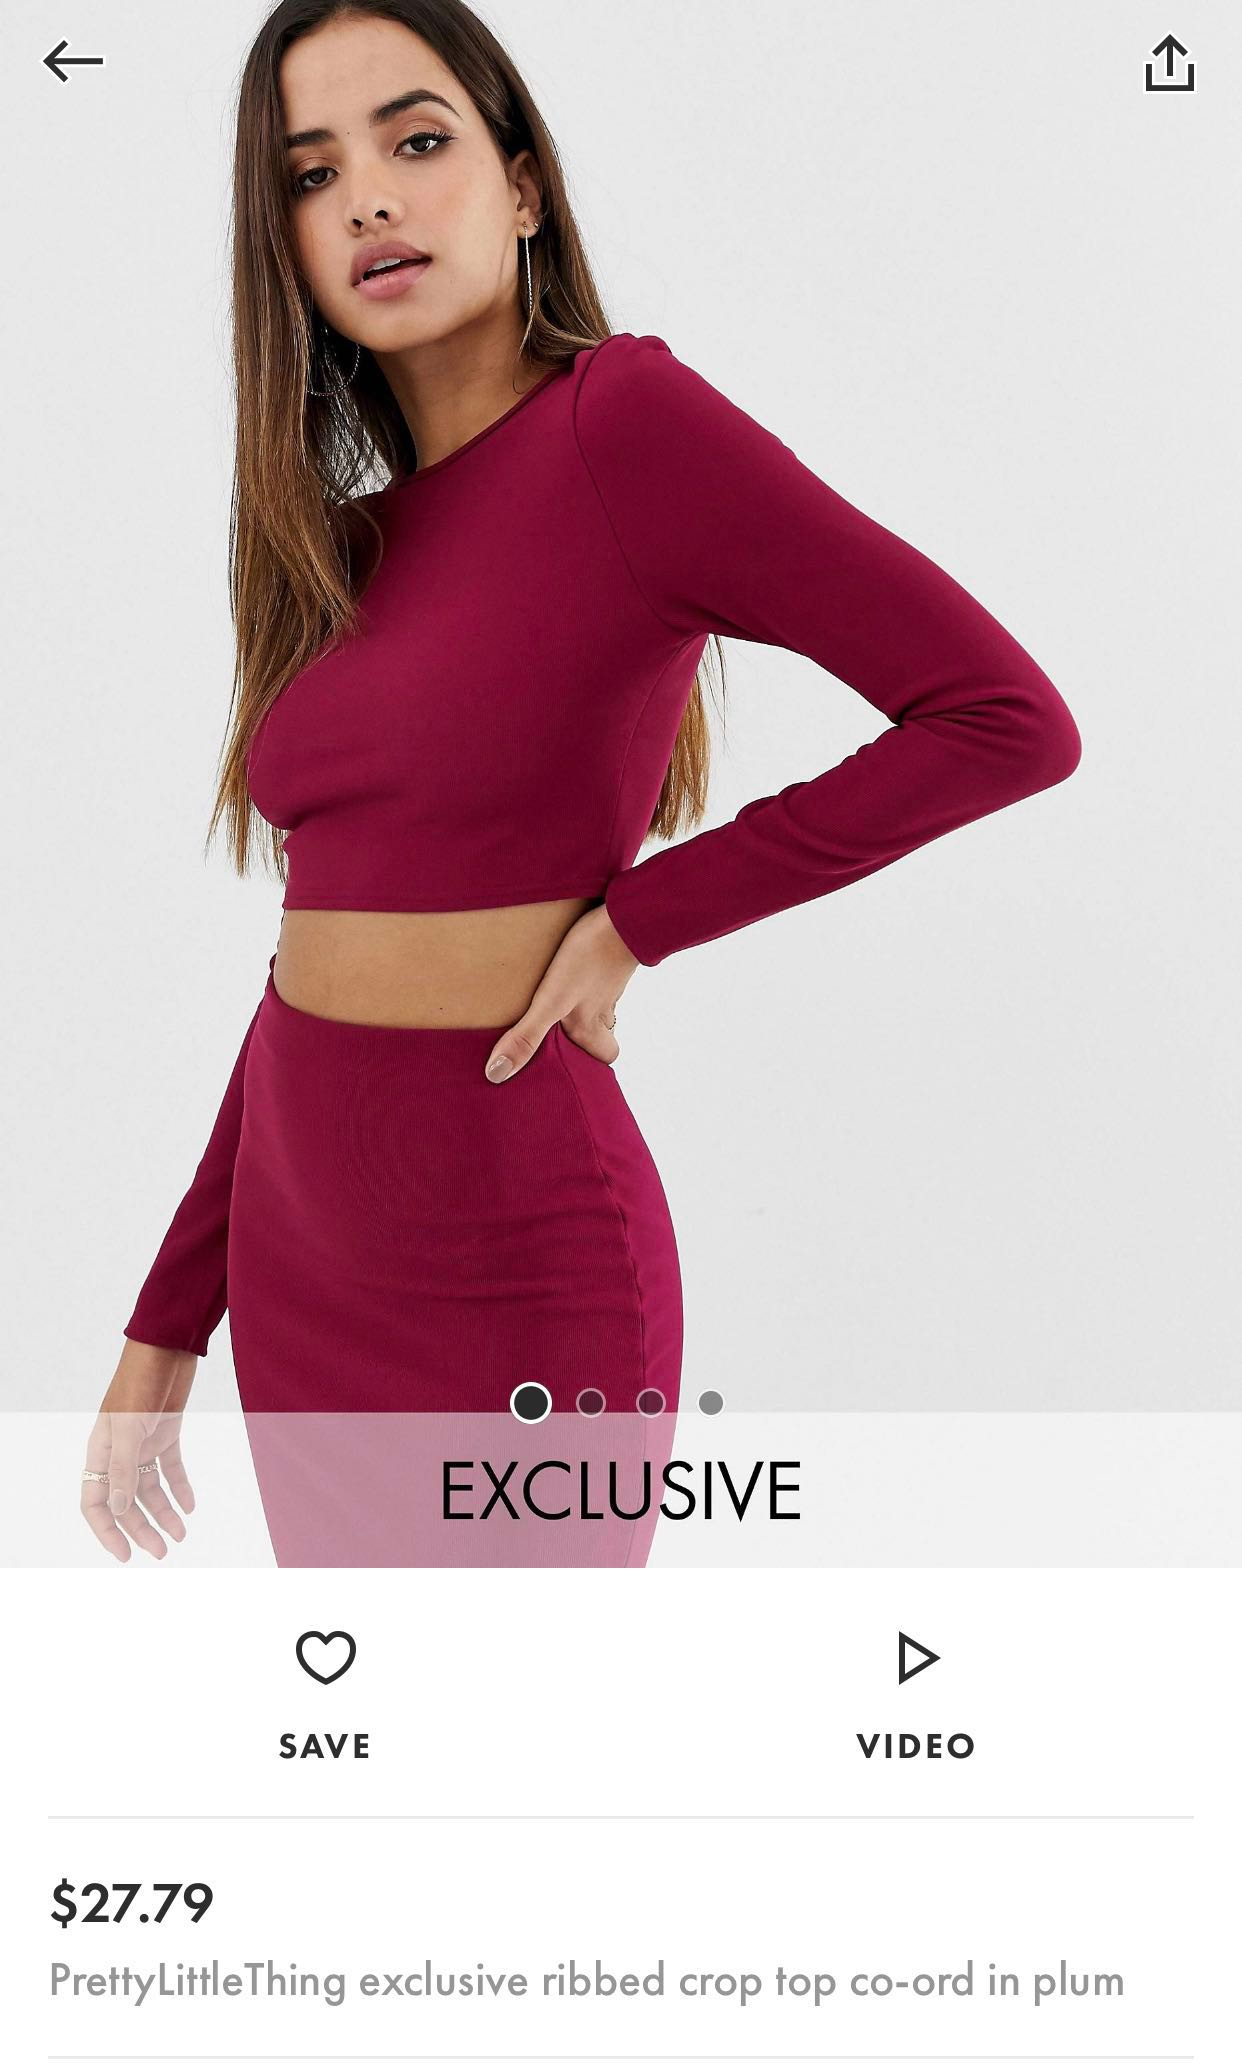 102d0b39bc889 [BNIP] ASOS Exclusive PrettyLittleThing Co-ord Ribbed Crop Top in Plum,  Women's Fashion, Clothes, Tops on Carousell